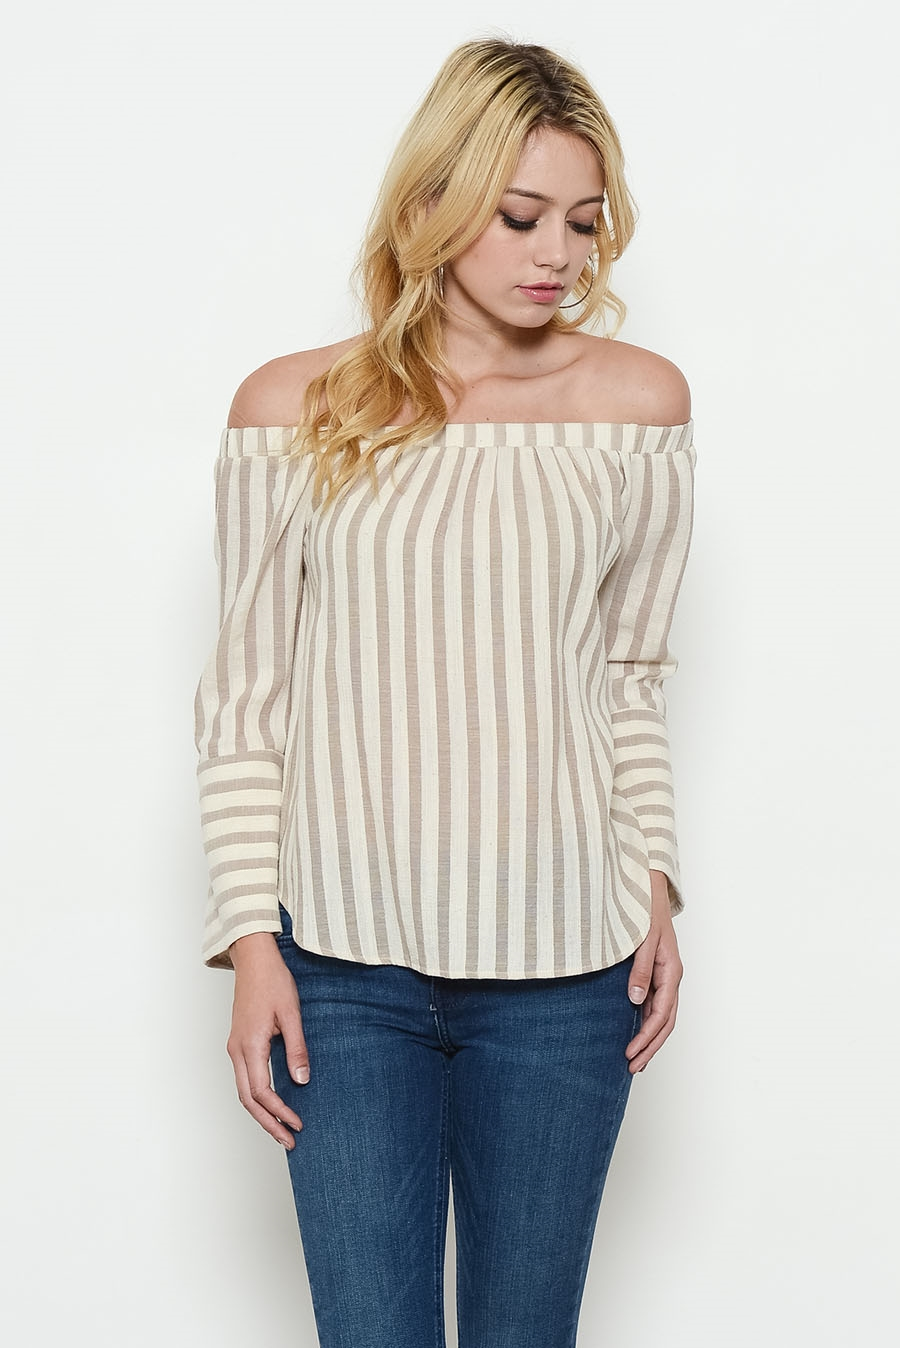 LINEN STRIPE OFF SHOULDER - orangeshine.com